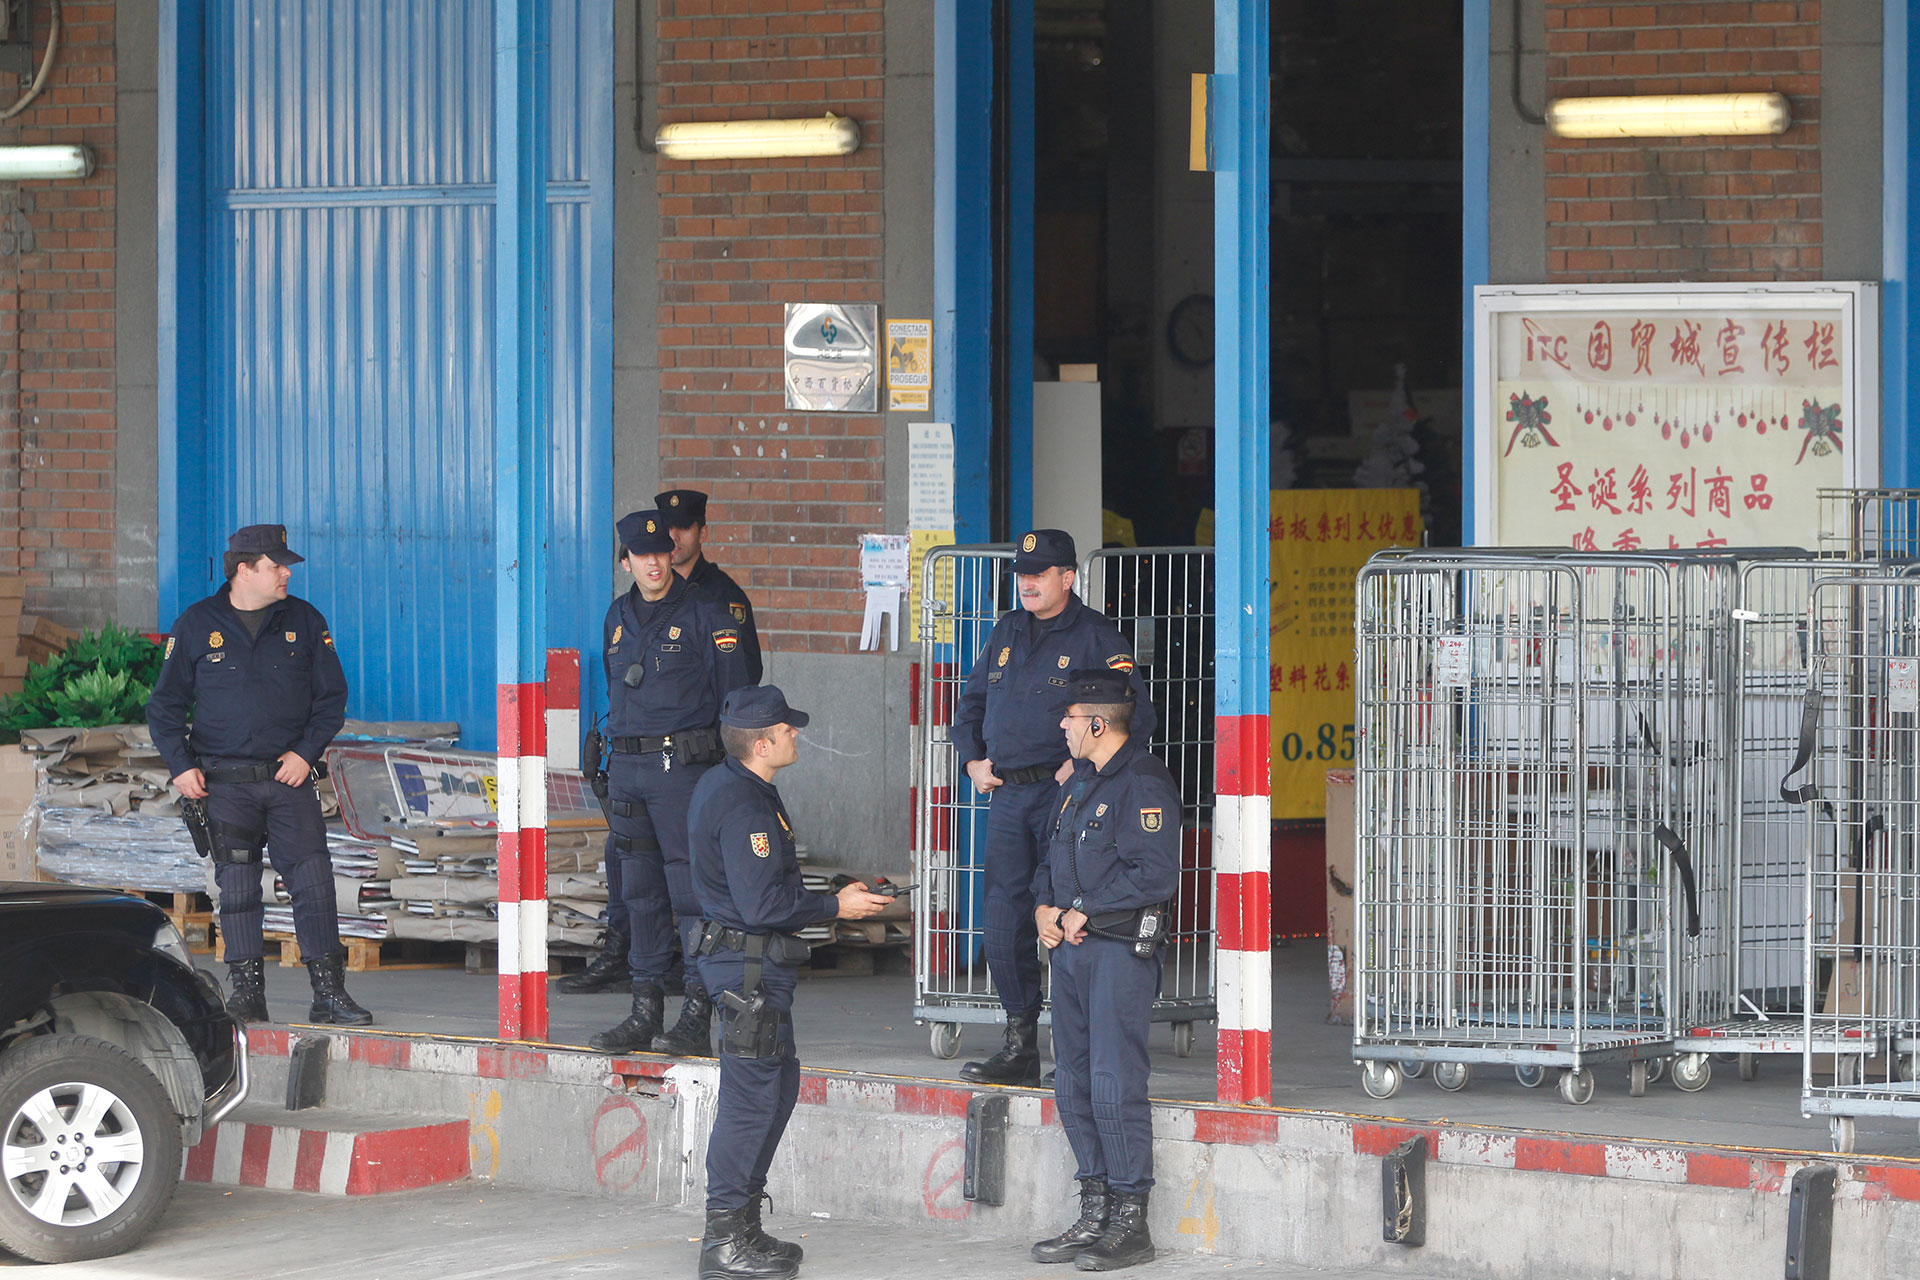 How Chinas Biggest Bank Became Ensnared In A Money Laundering Probe Wiring China Tax Police Raid The Cobo Calleja Industrial Complex On Outskirts Of Madrid 2012 As Part Operation Emperor Spanish Authorities Say Chinese